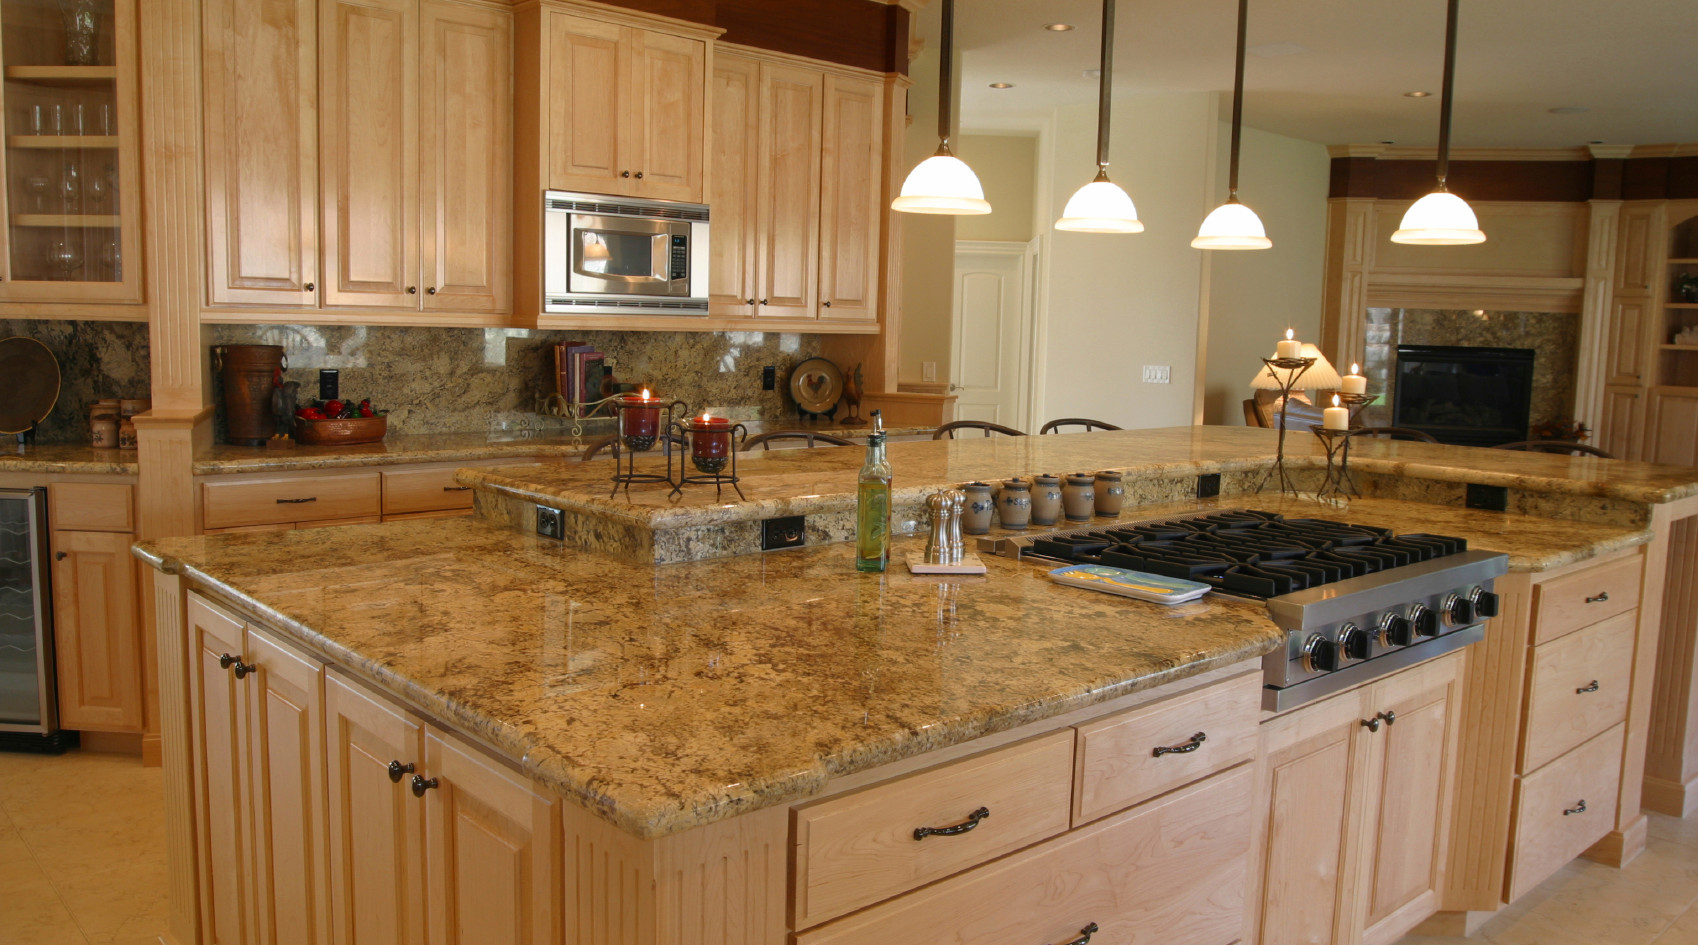 Granite Kitchen Countertops, Premier Supplier of marble, granite, quartzite, and manufactured quartz products, Njcountertops.com